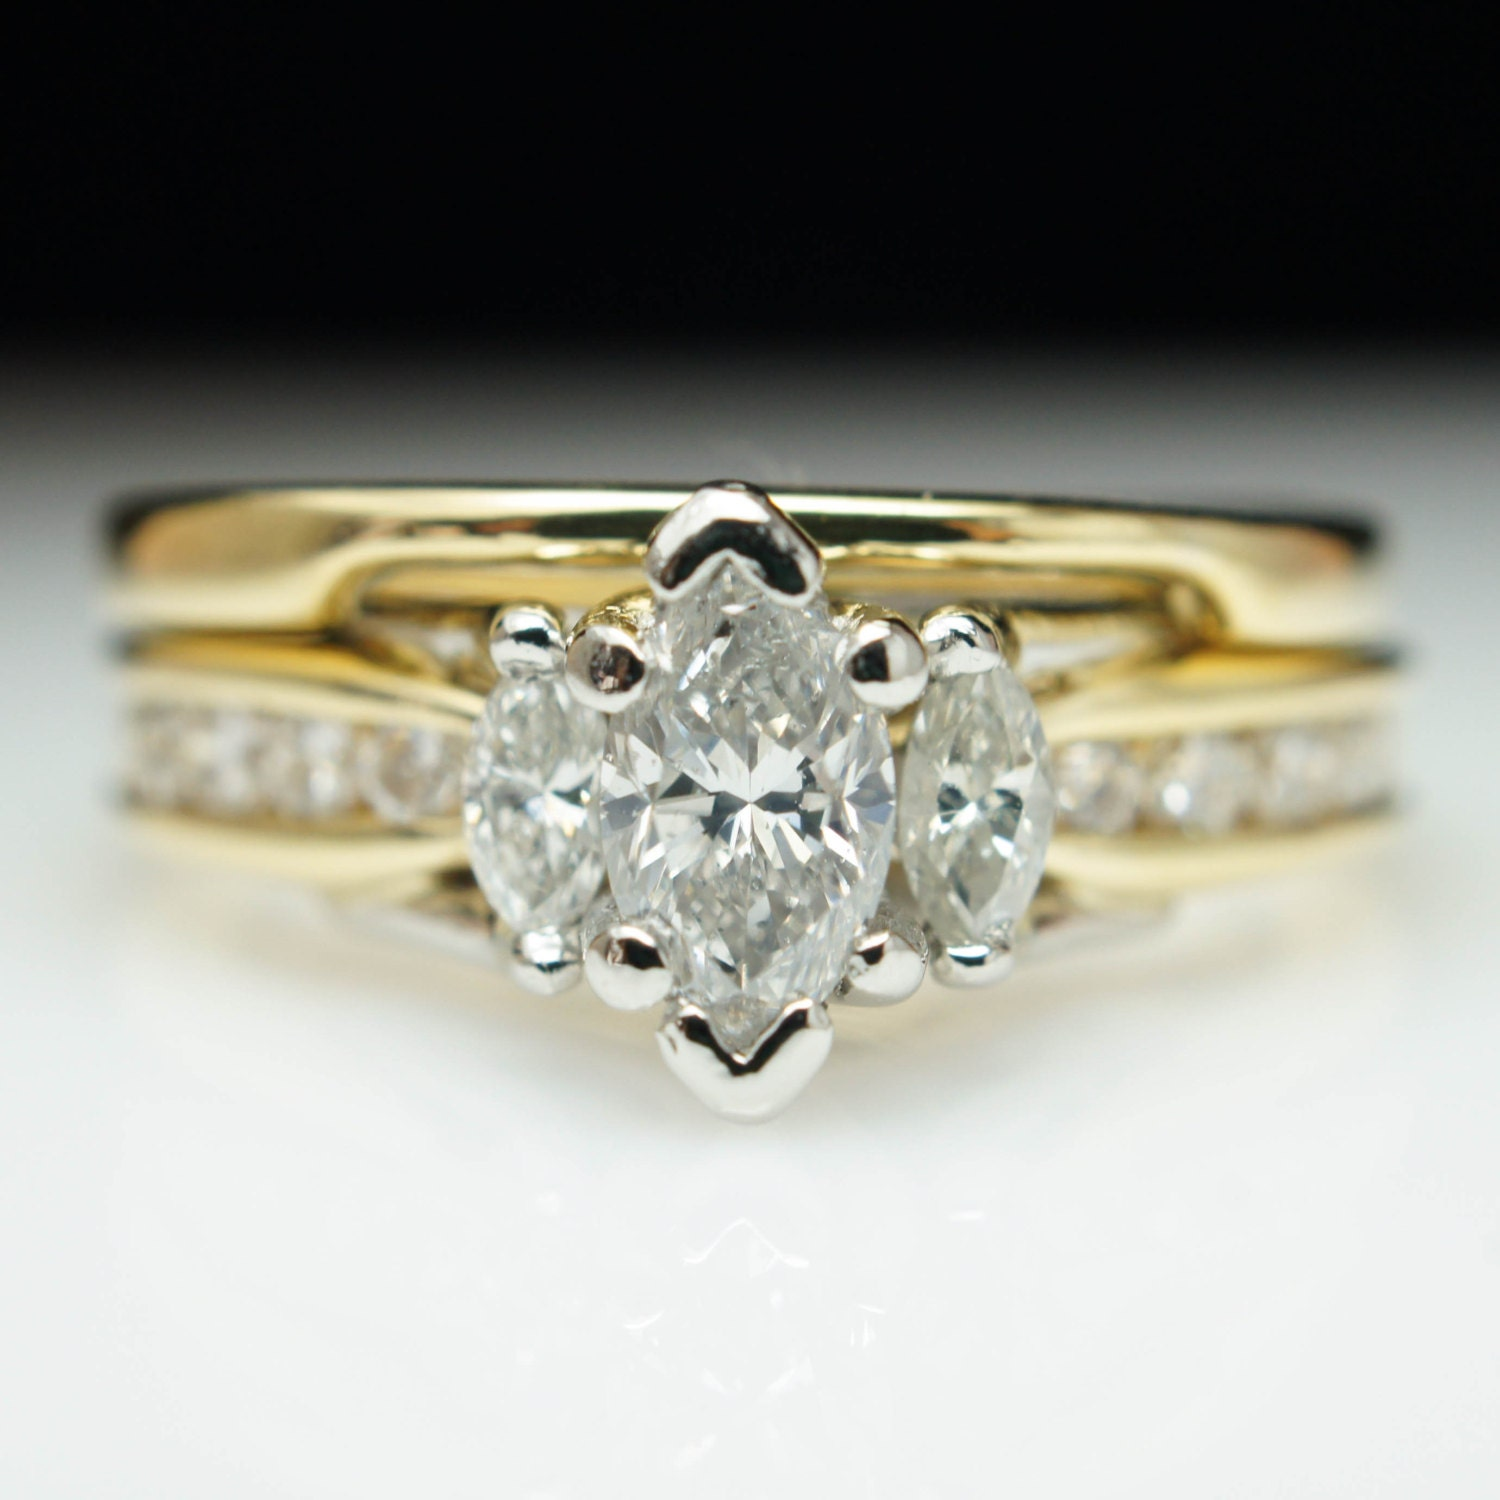 Vintage Marquise Diamond Engagement Ring & by JamieKatesJewelry